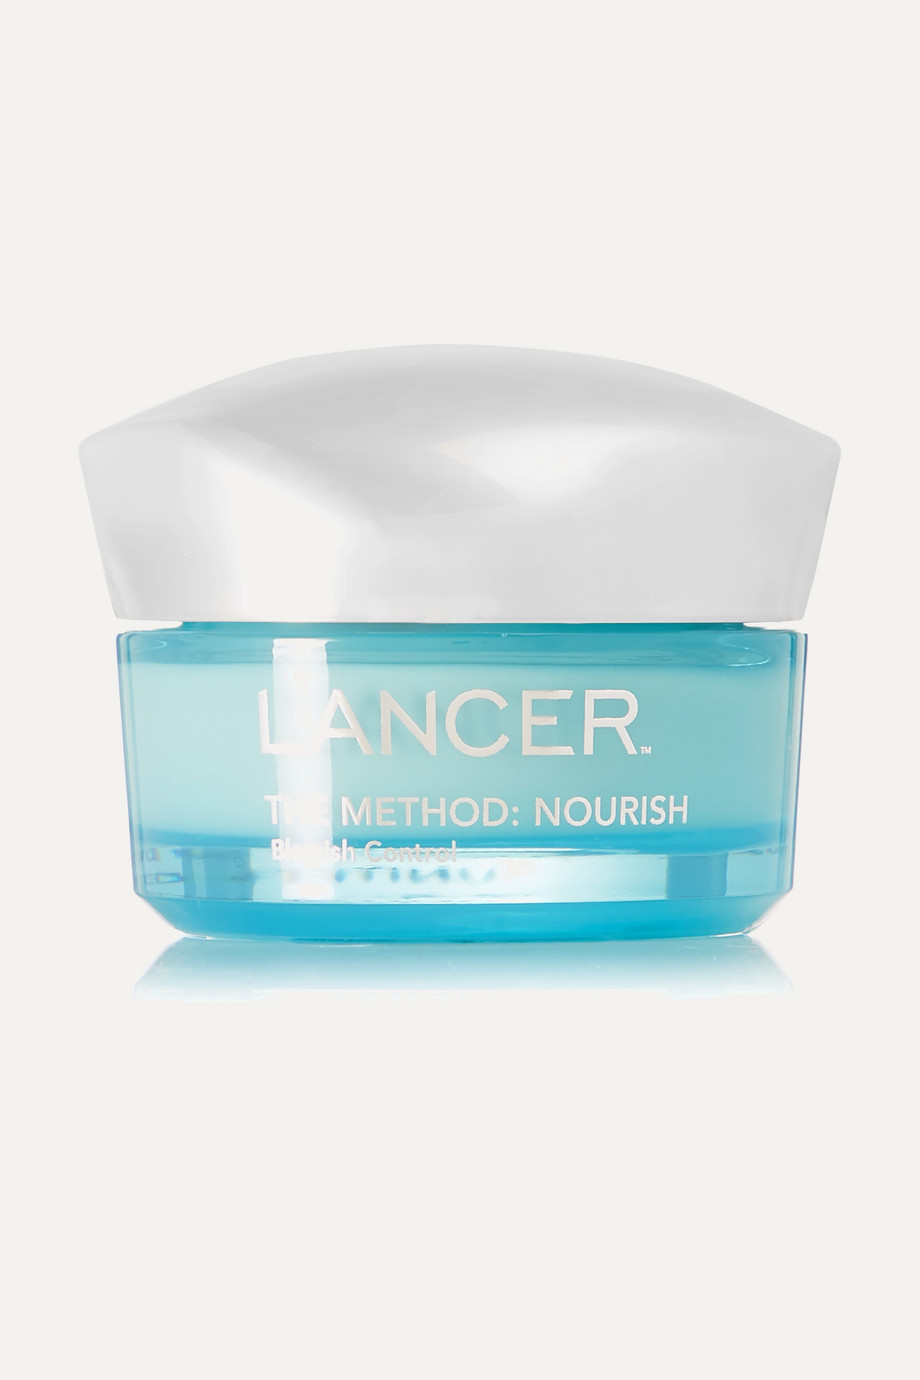 Lancer The Method: Nourish Blemish Control, 50ml